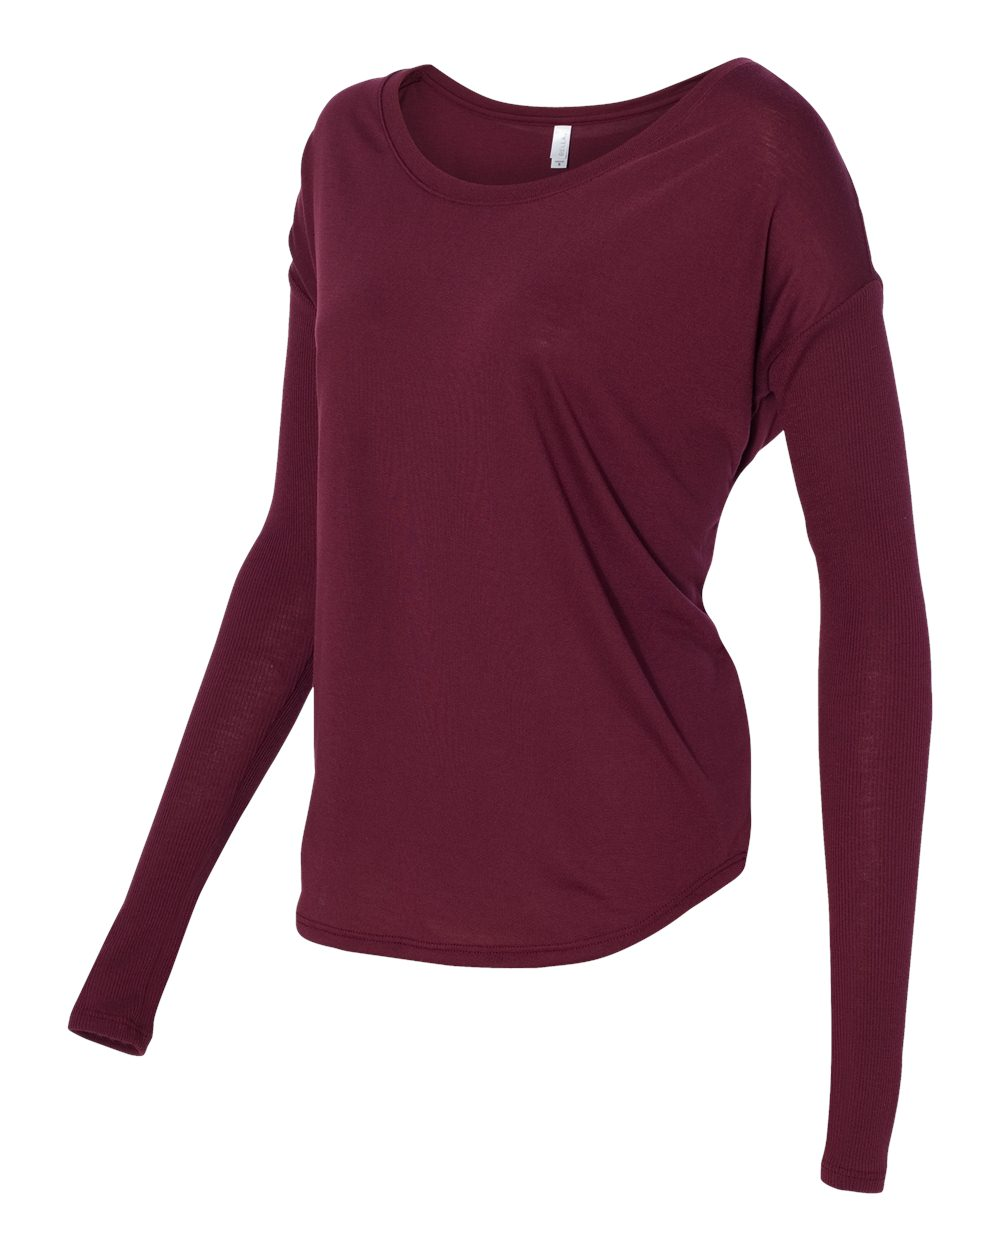 Bella 8852 - Ladies' Flowy Long Sleeve T-Shirt With 2x1 Rib ...